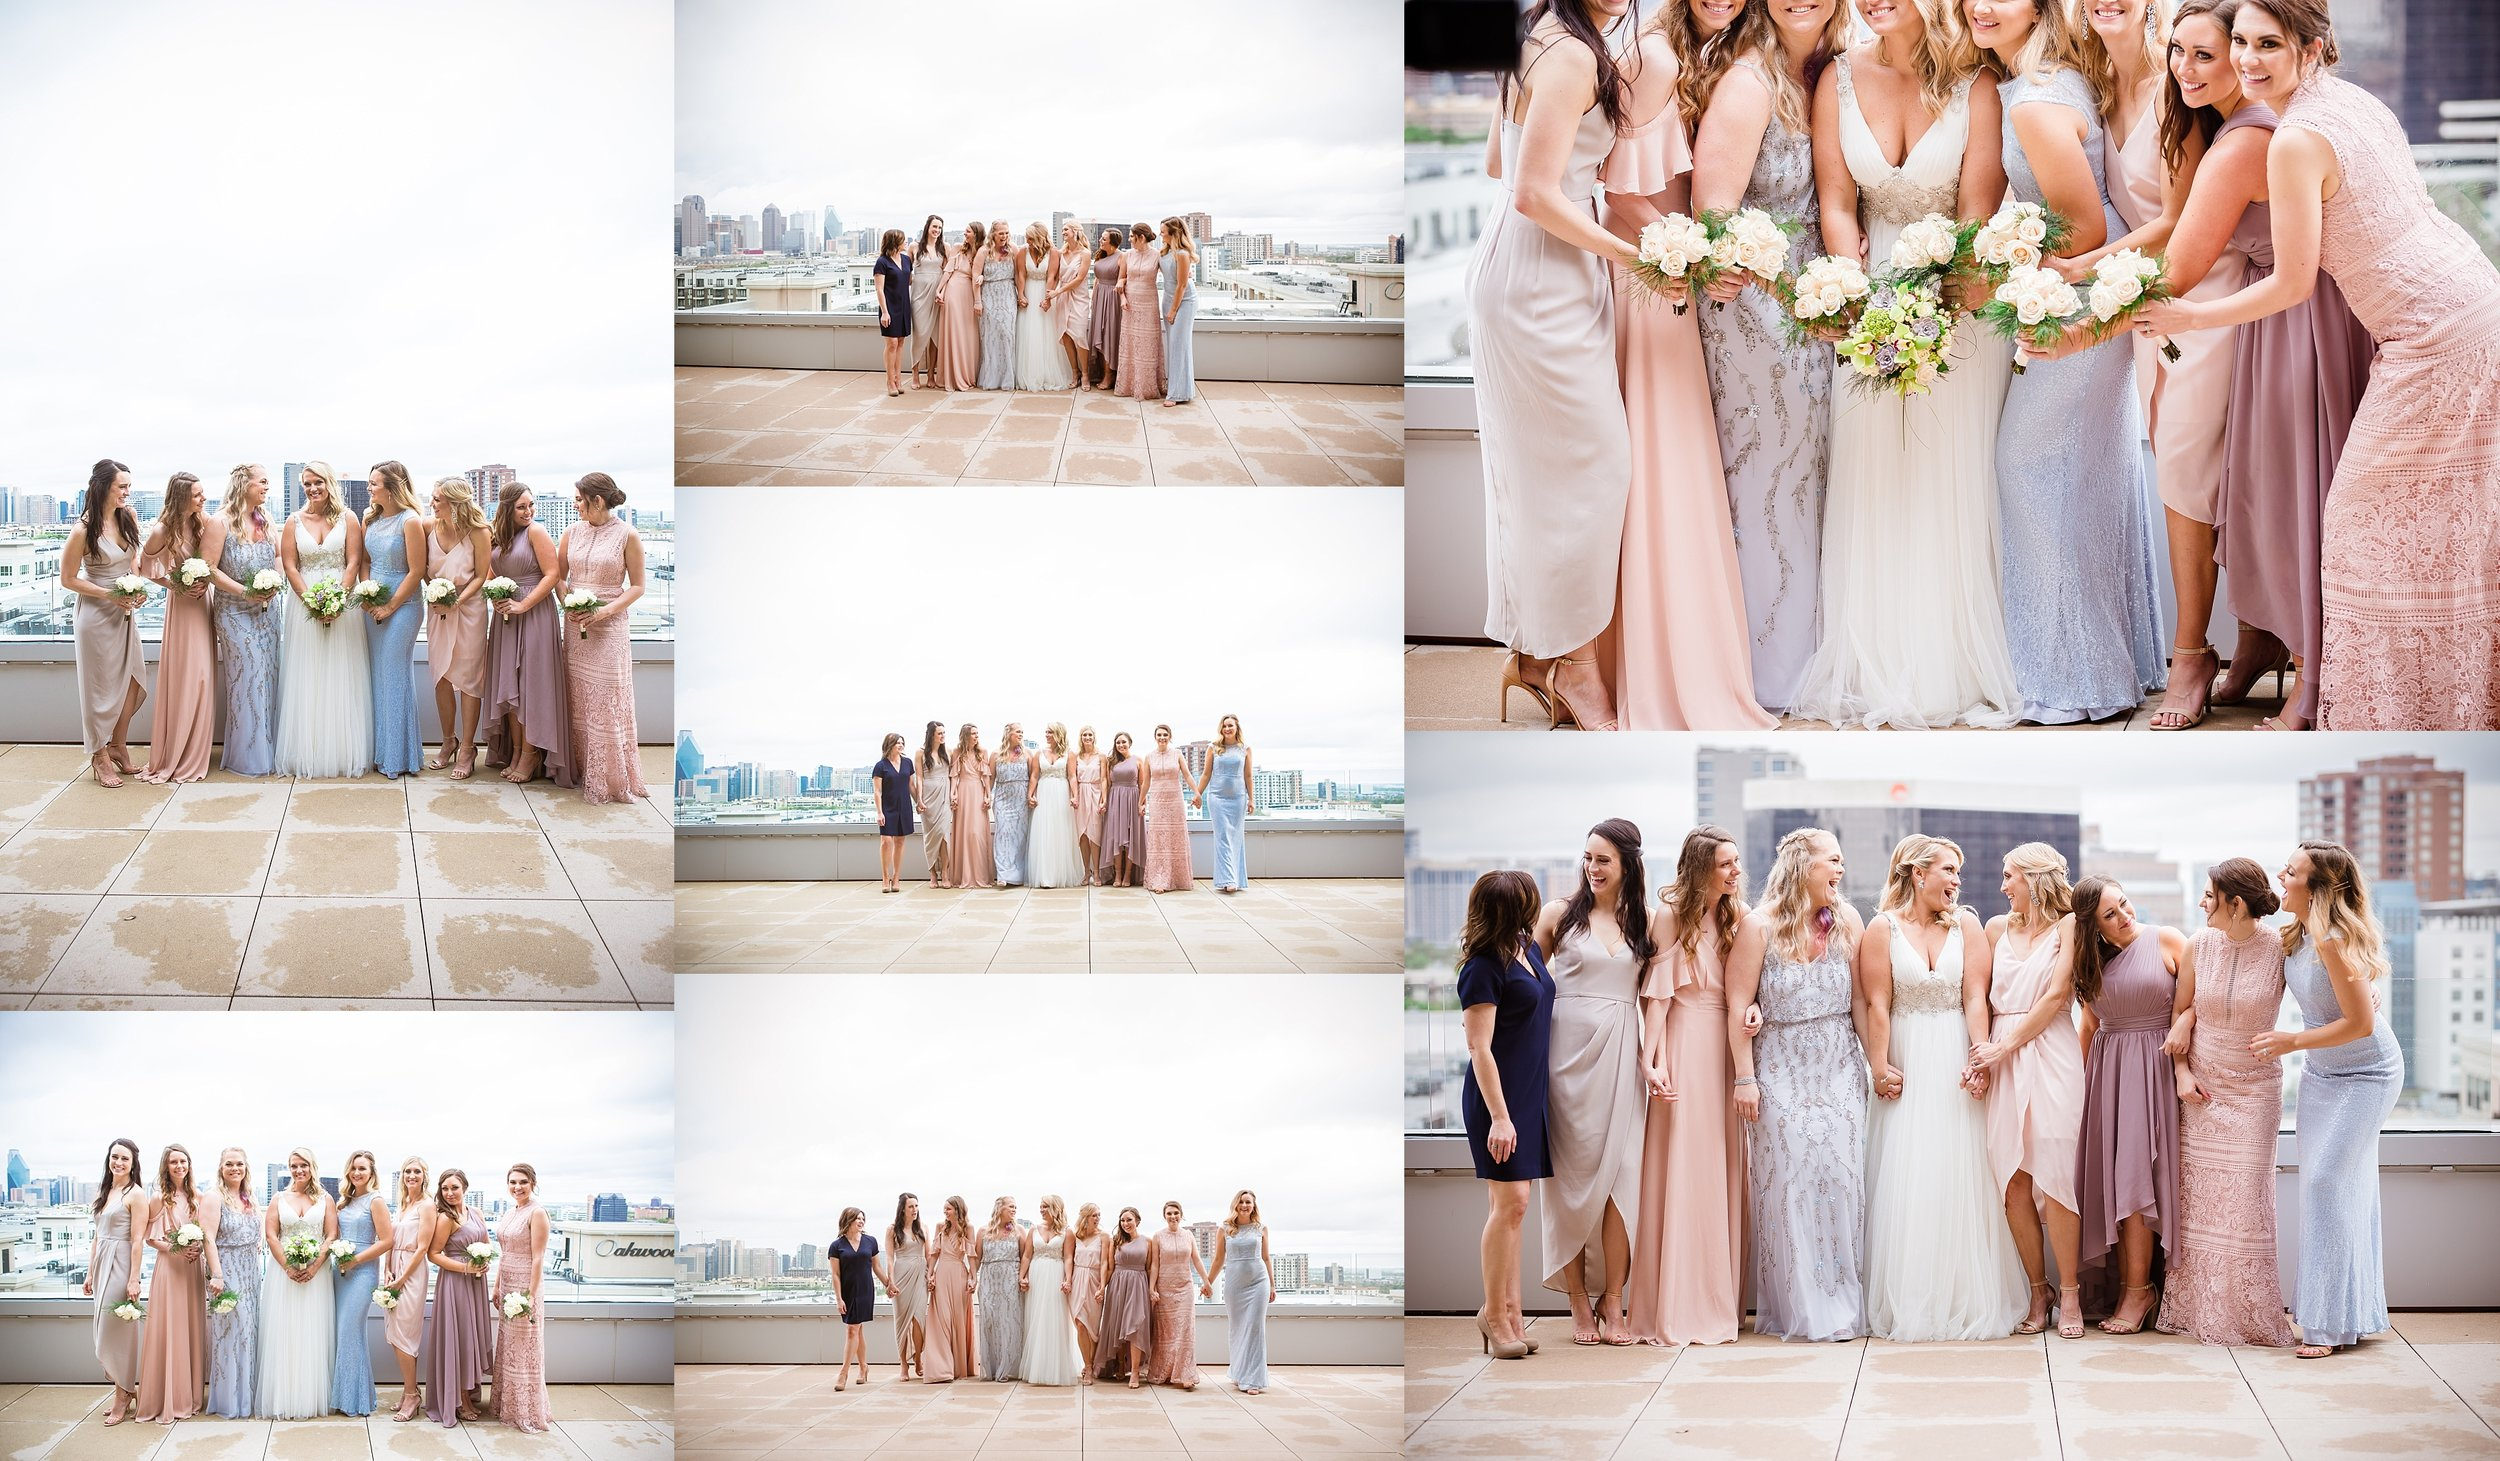 I might have loved to many bridesmaid pictures! So gorgeous